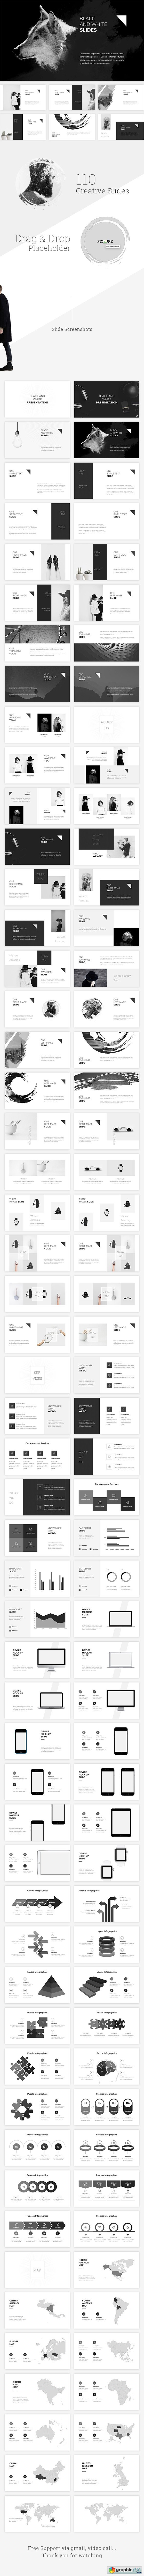 Black And White Powerpoint Template Free Download Vector Stock